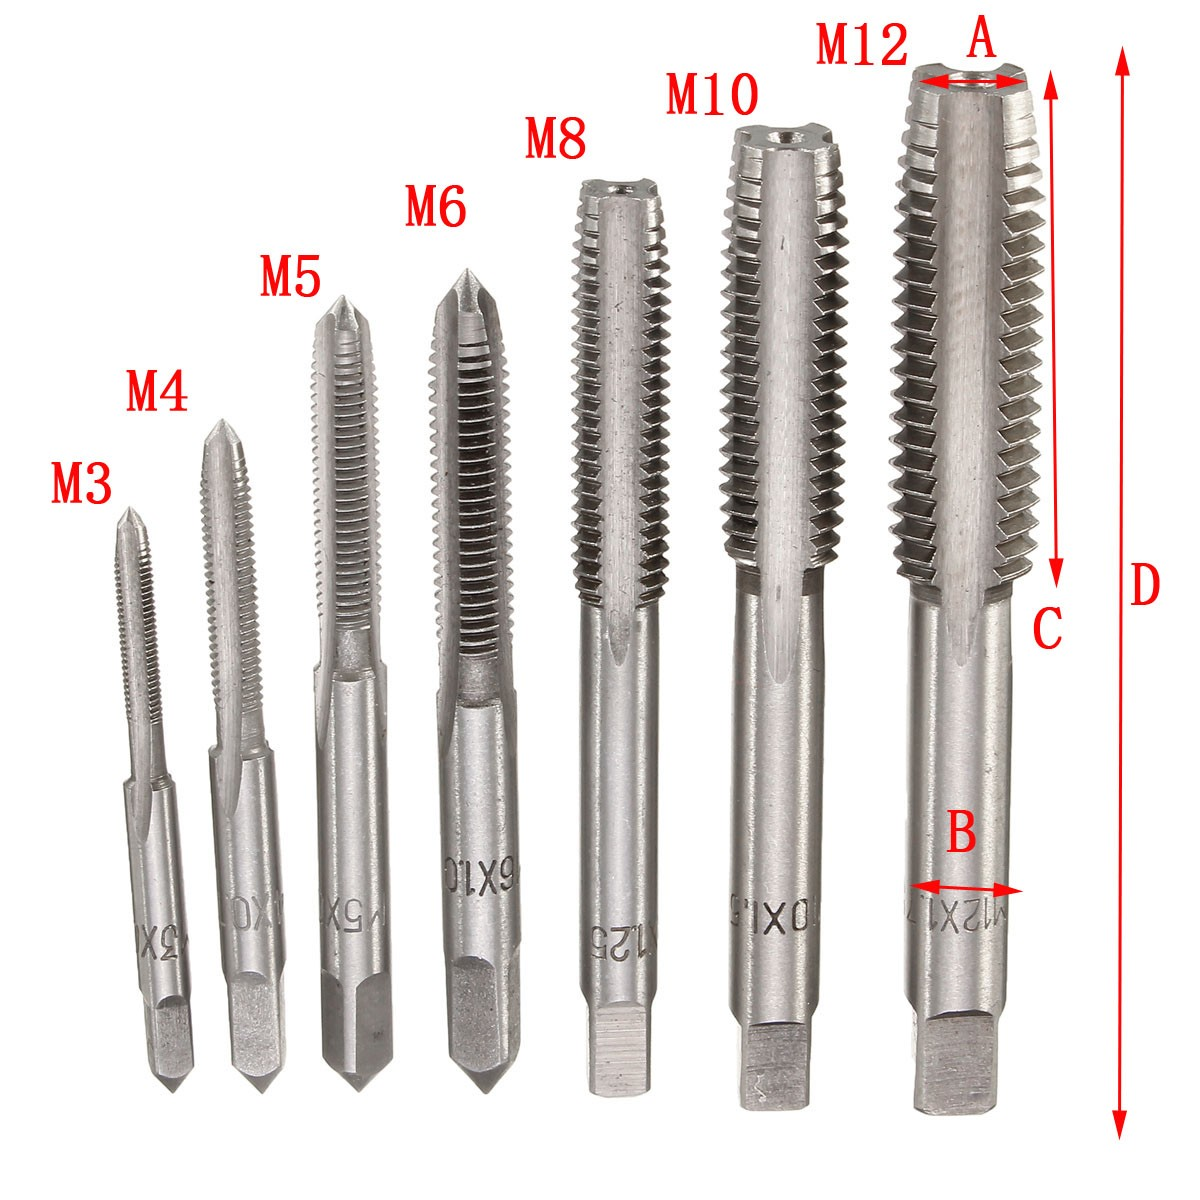 M1.2 x 0.25 HSS Right Hand Thread Forming Tap